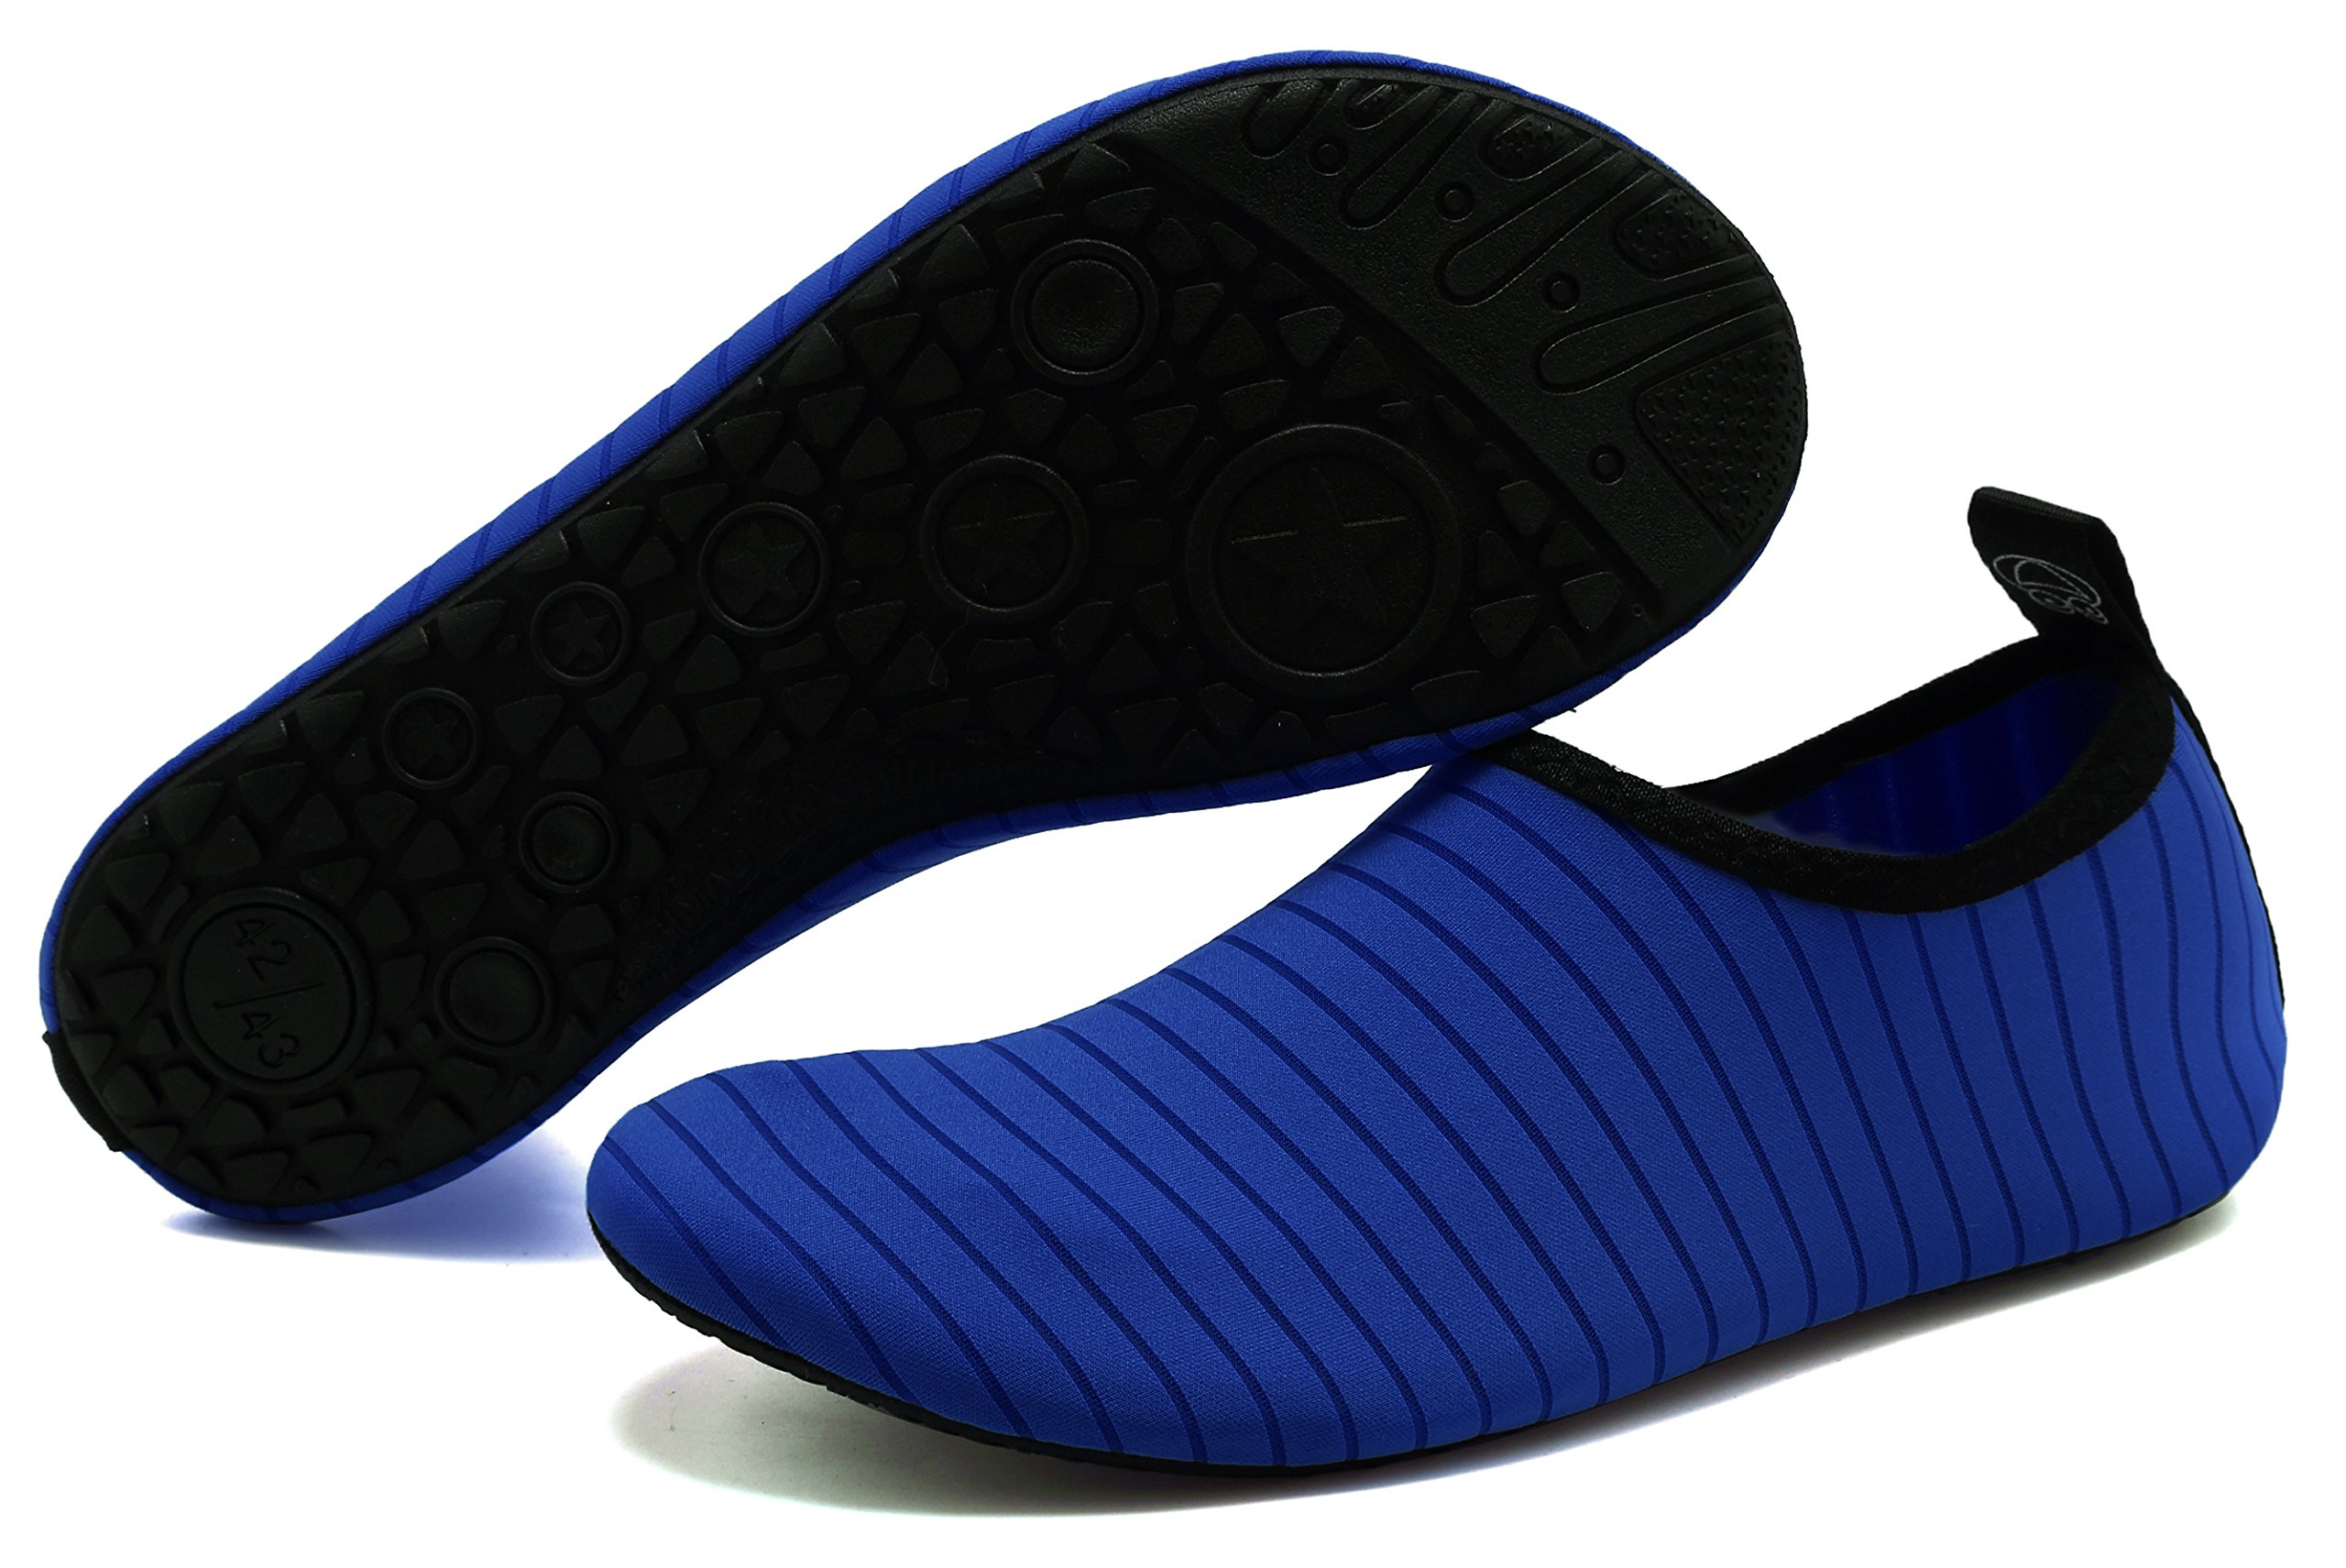 GUPYING Womens and Mens Summer Outdoor Water Shoes Aqua Socks for Beach Swim Surf Yoga Exercise (M(W:7.5-8.5,M:6.5-7.5), Blue) 38-39 by GUPYING (Image #2)